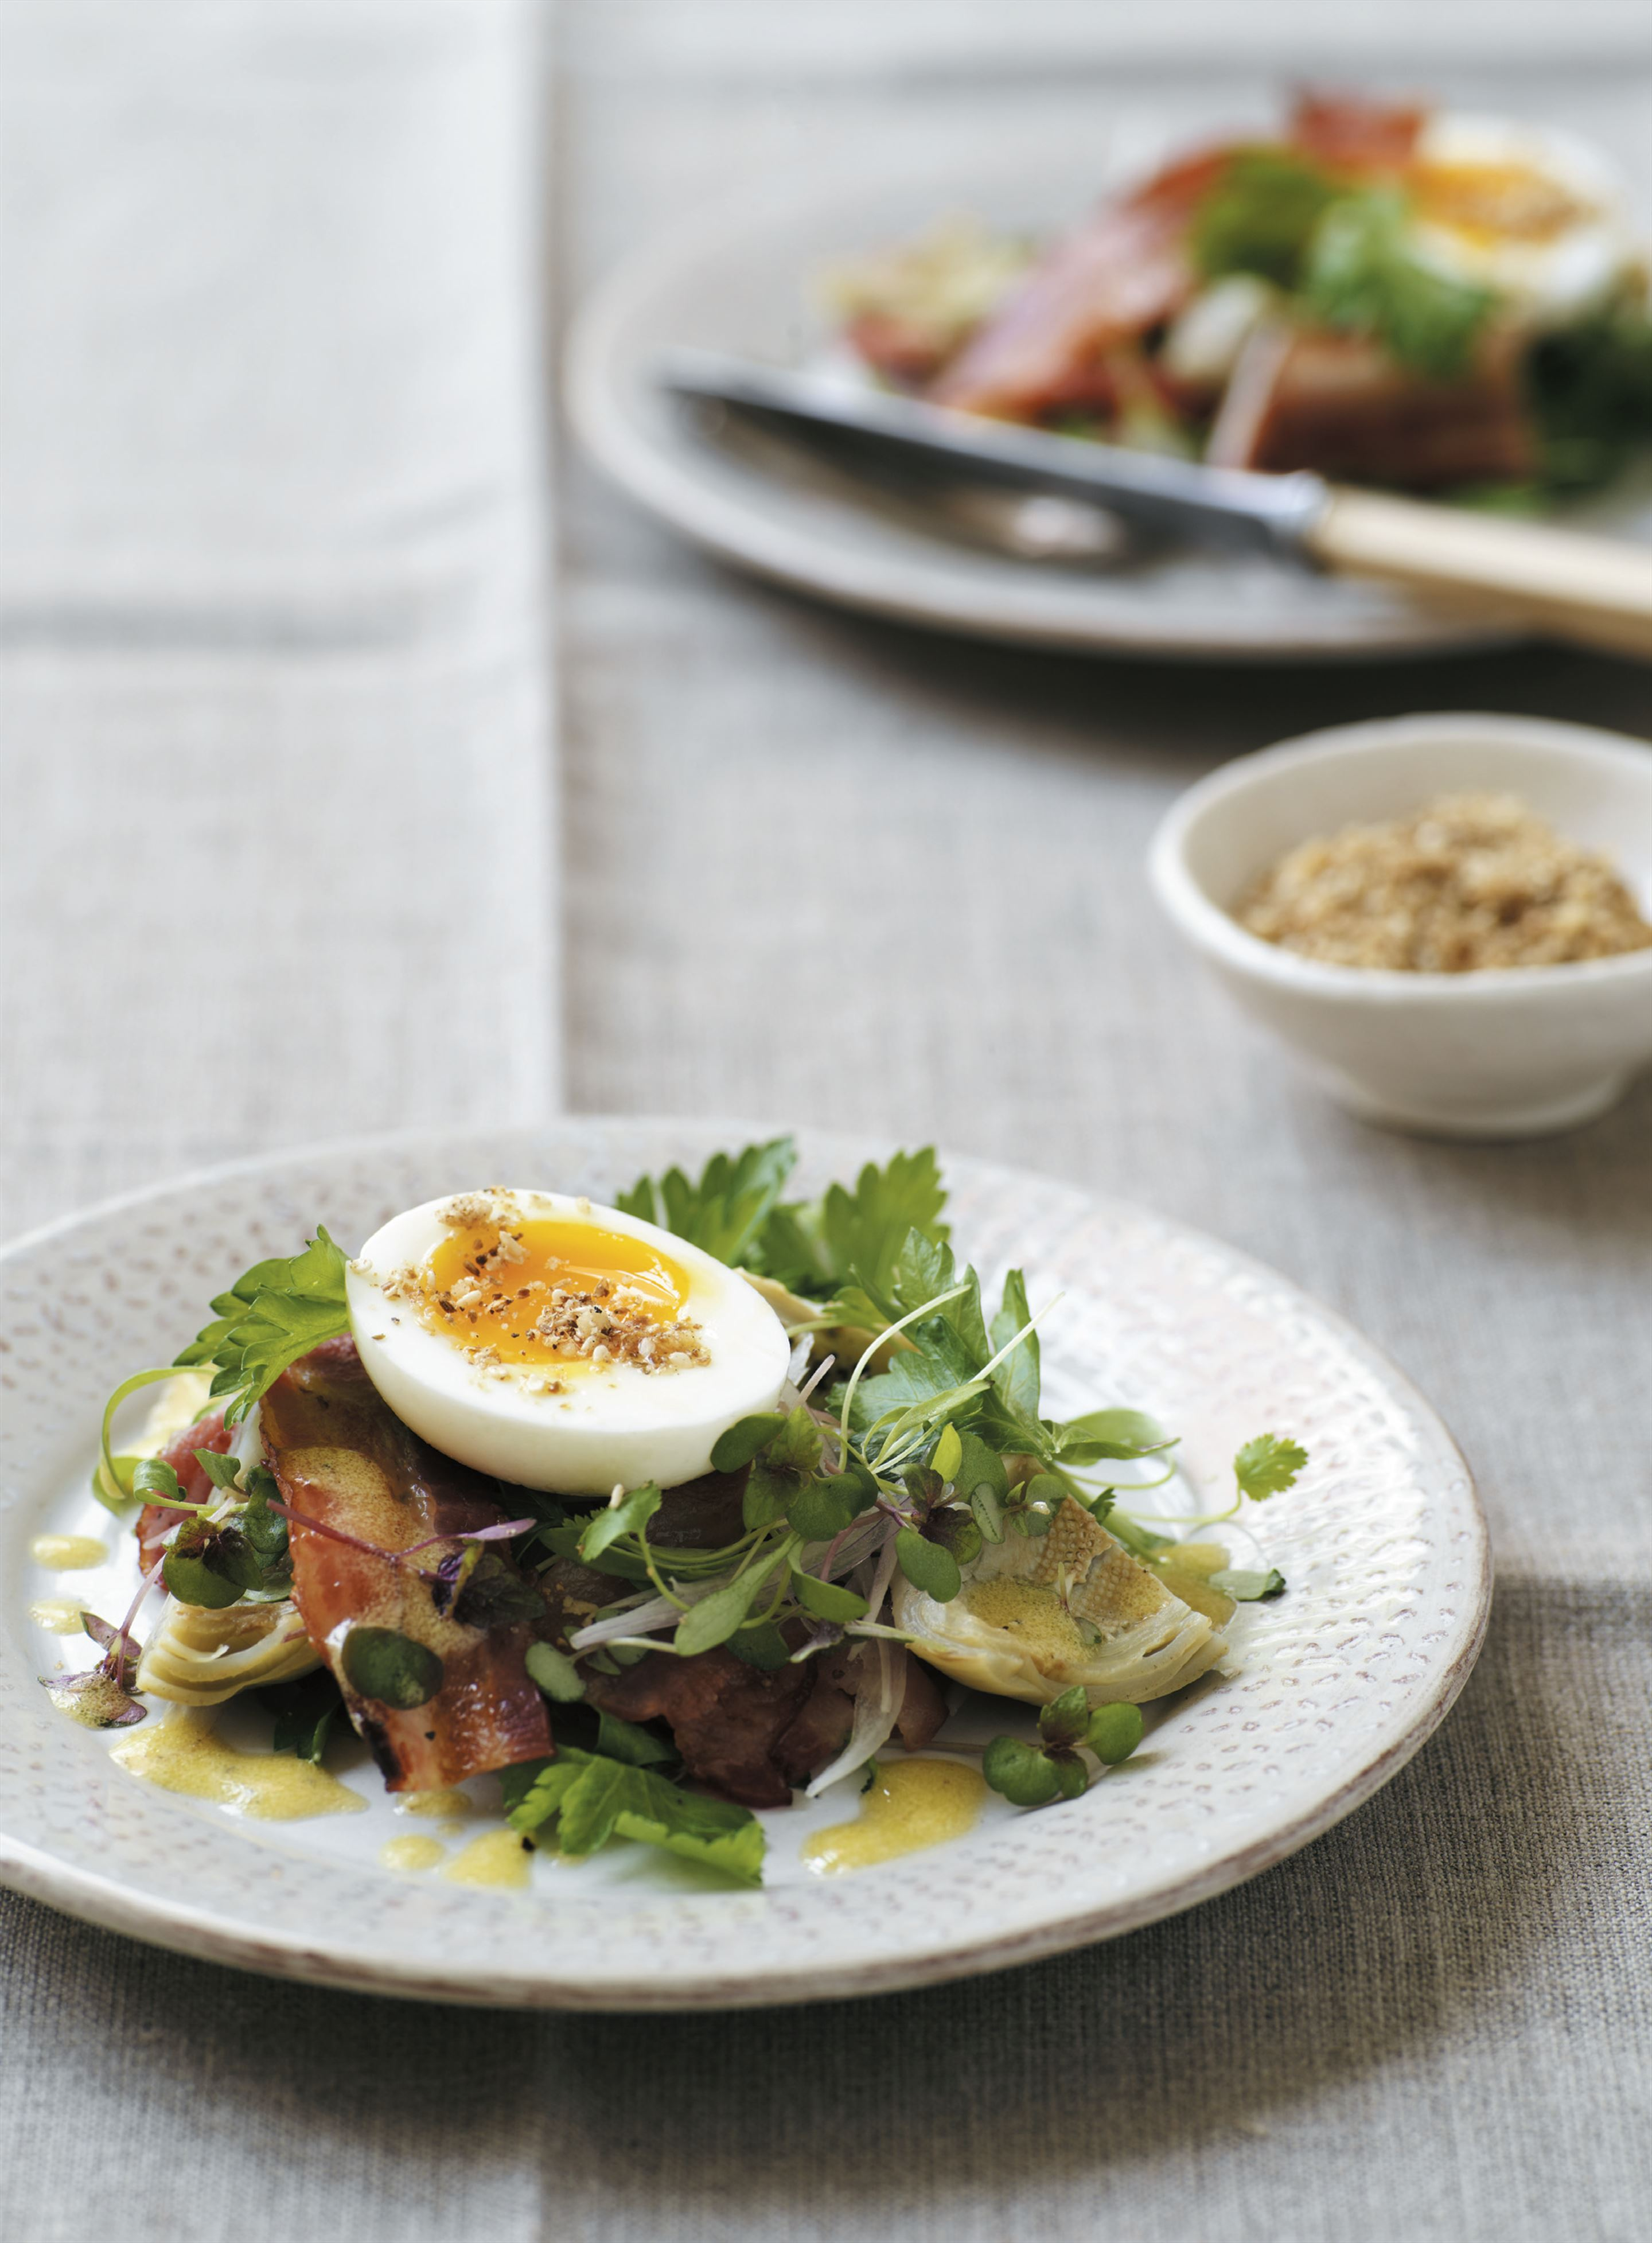 Artichoke salad with bacon and eggs